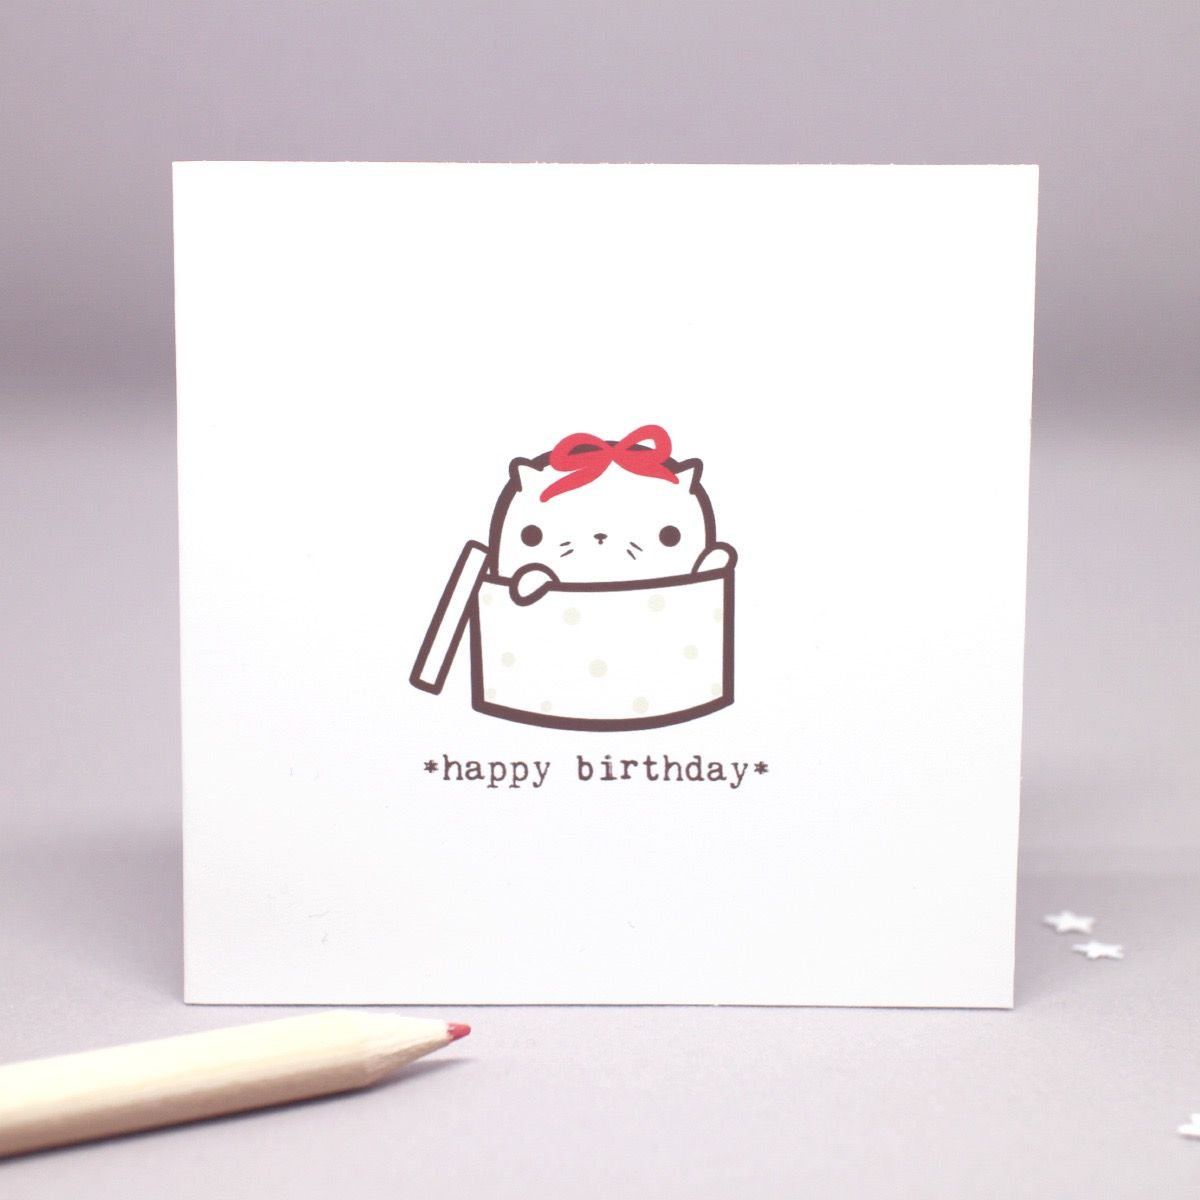 A Little Cat Says Happy Birthday! This Mini Square